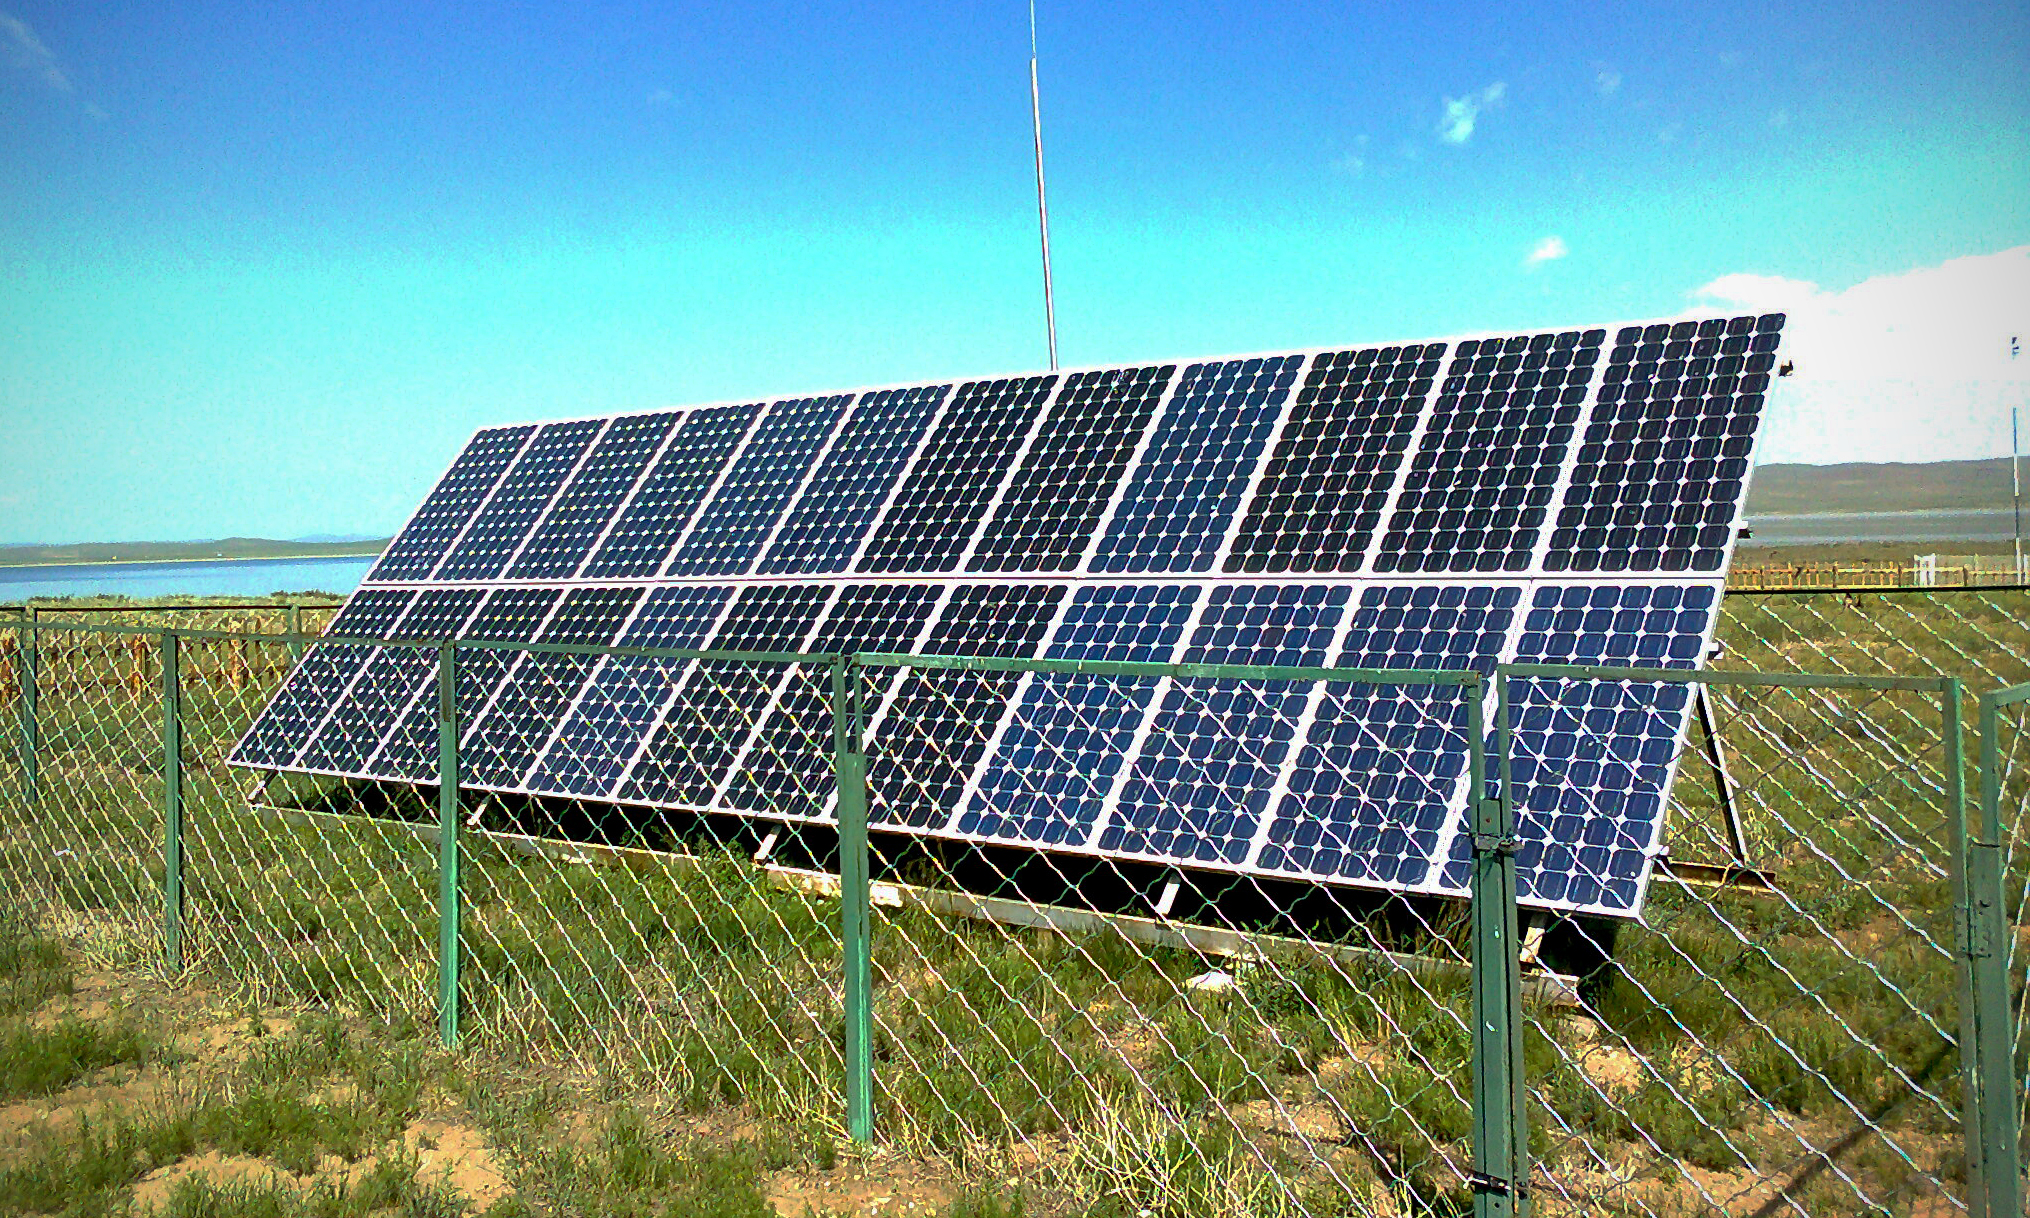 File:Solar panels in Ogiinuur.jpg - Wikipedia, the free encyclopedia